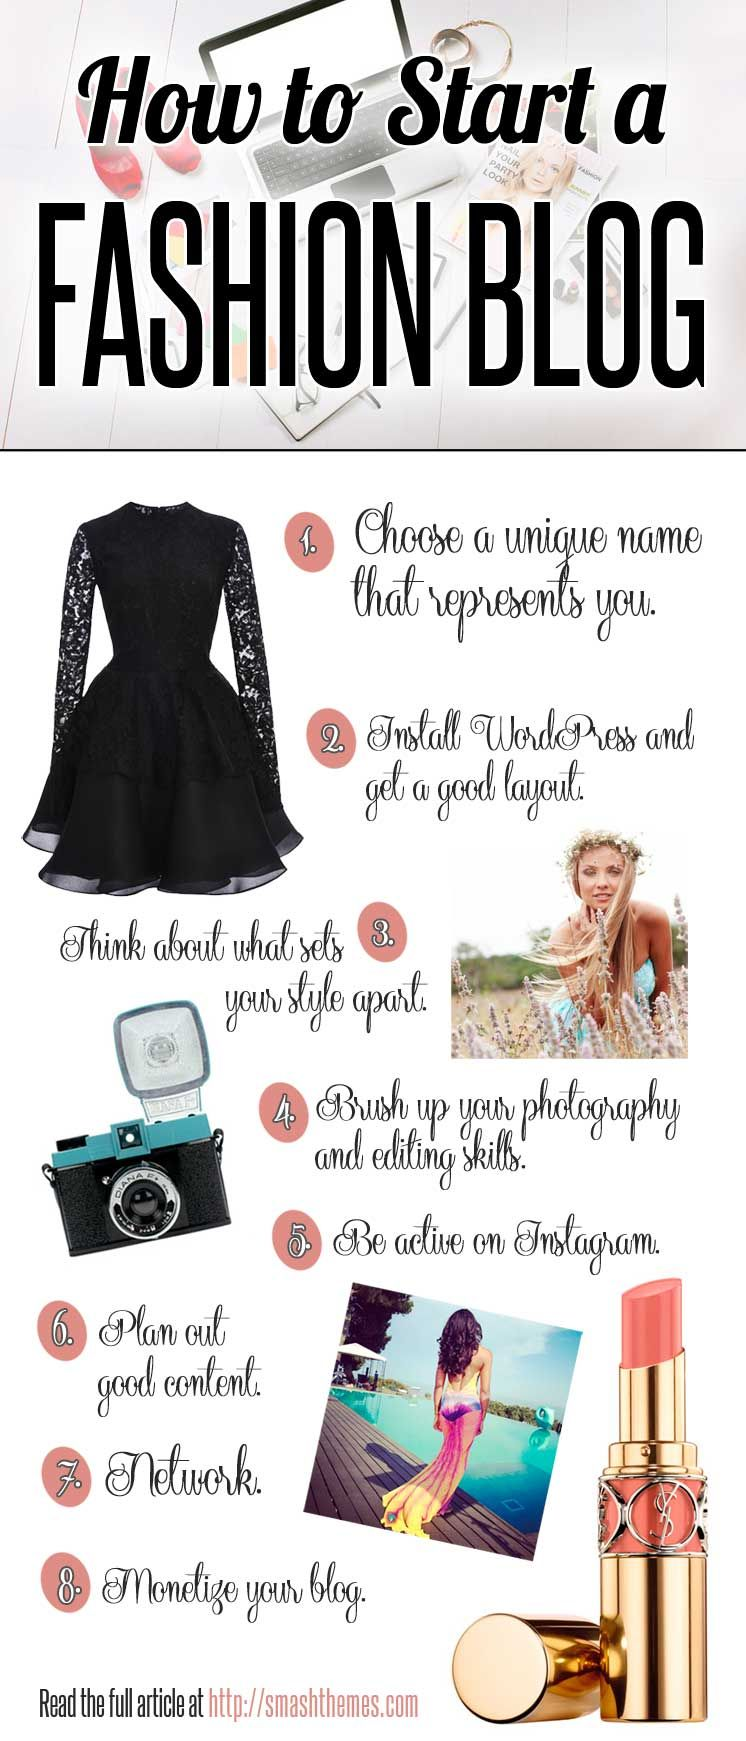 Blog: How To Start A Fashion Blog Infographic. 10 Tips About How